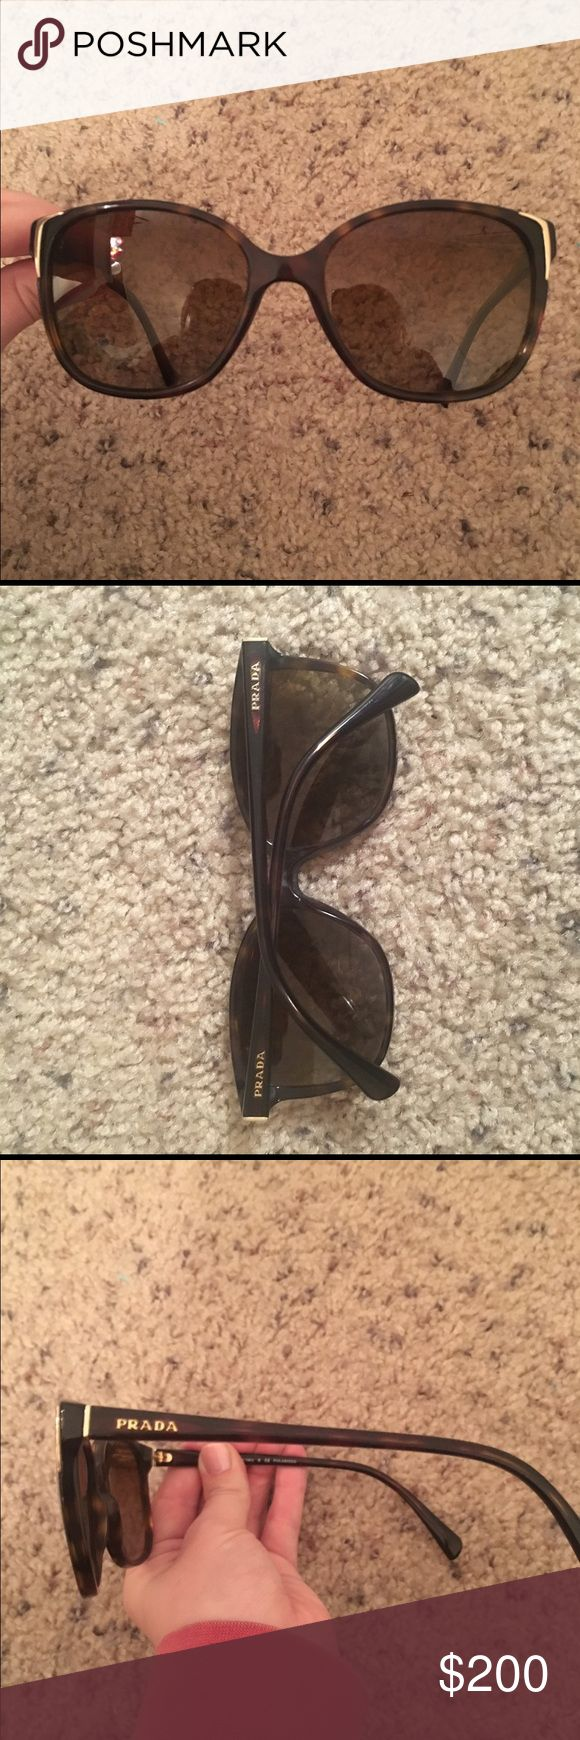 Prada Women's Sunglasses Prada women's butterfly style sunglasses- Tortoiseshell with gradient lens- UVA/UVB protection, polarized- great condition, only worn a few times Prada Accessories Sunglasses